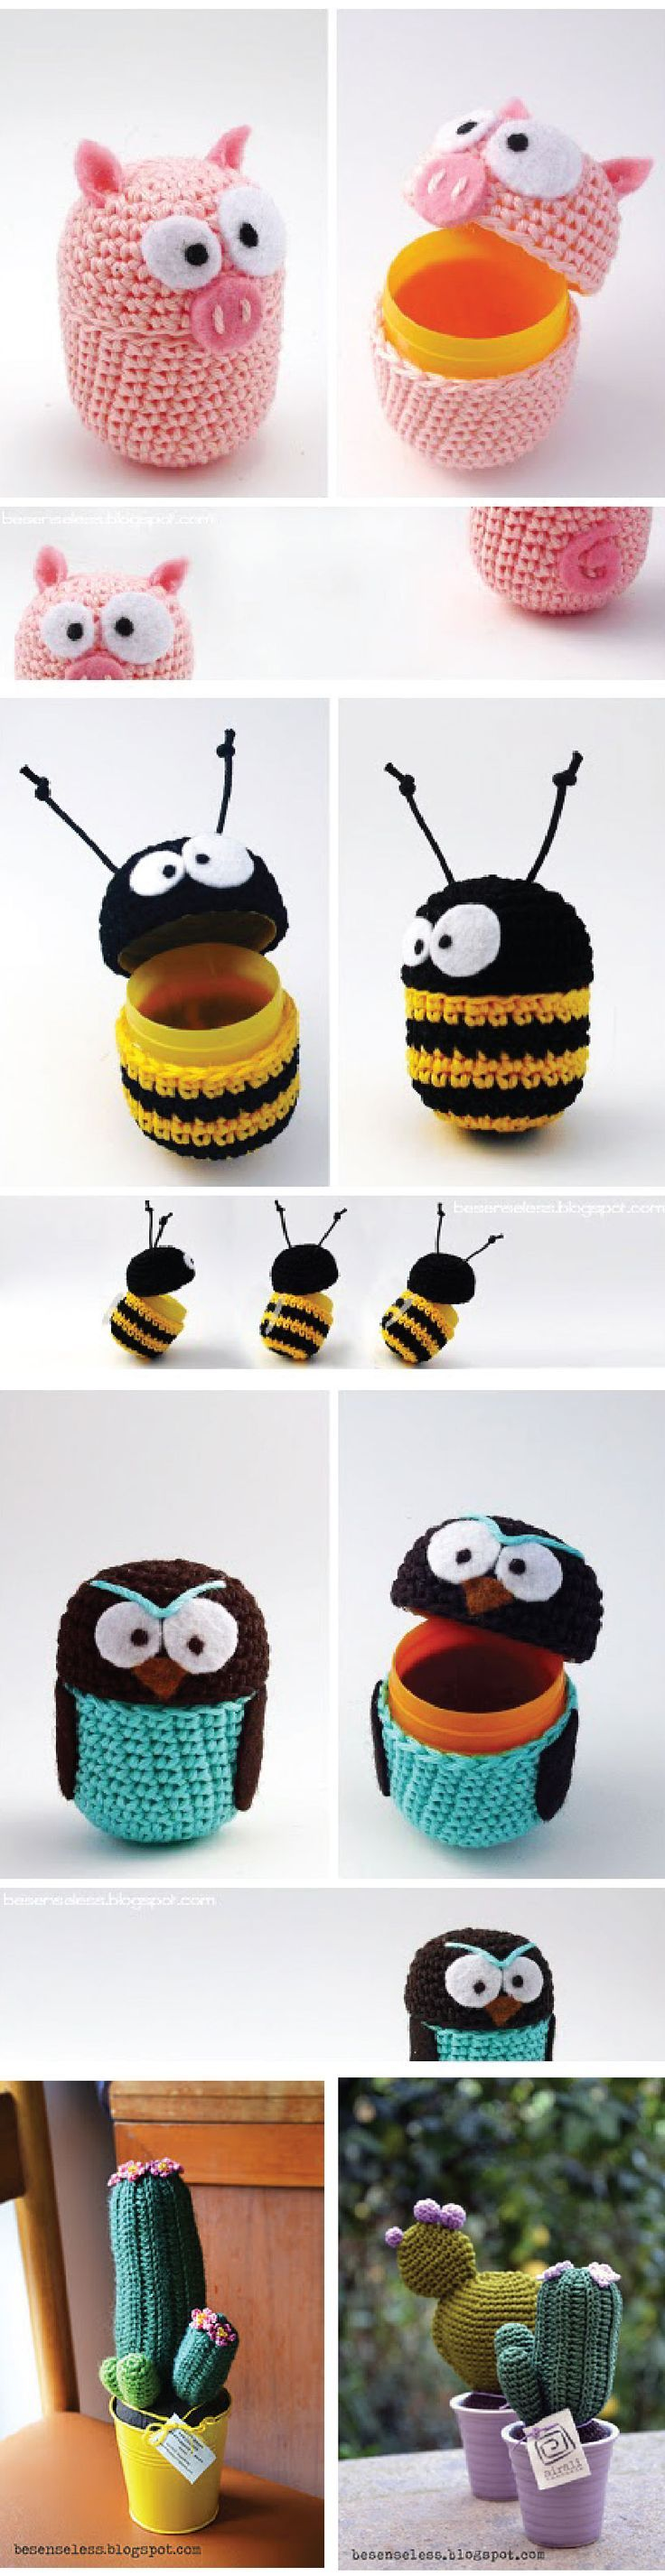 Crazy Crochet Patterns: Amigurumi